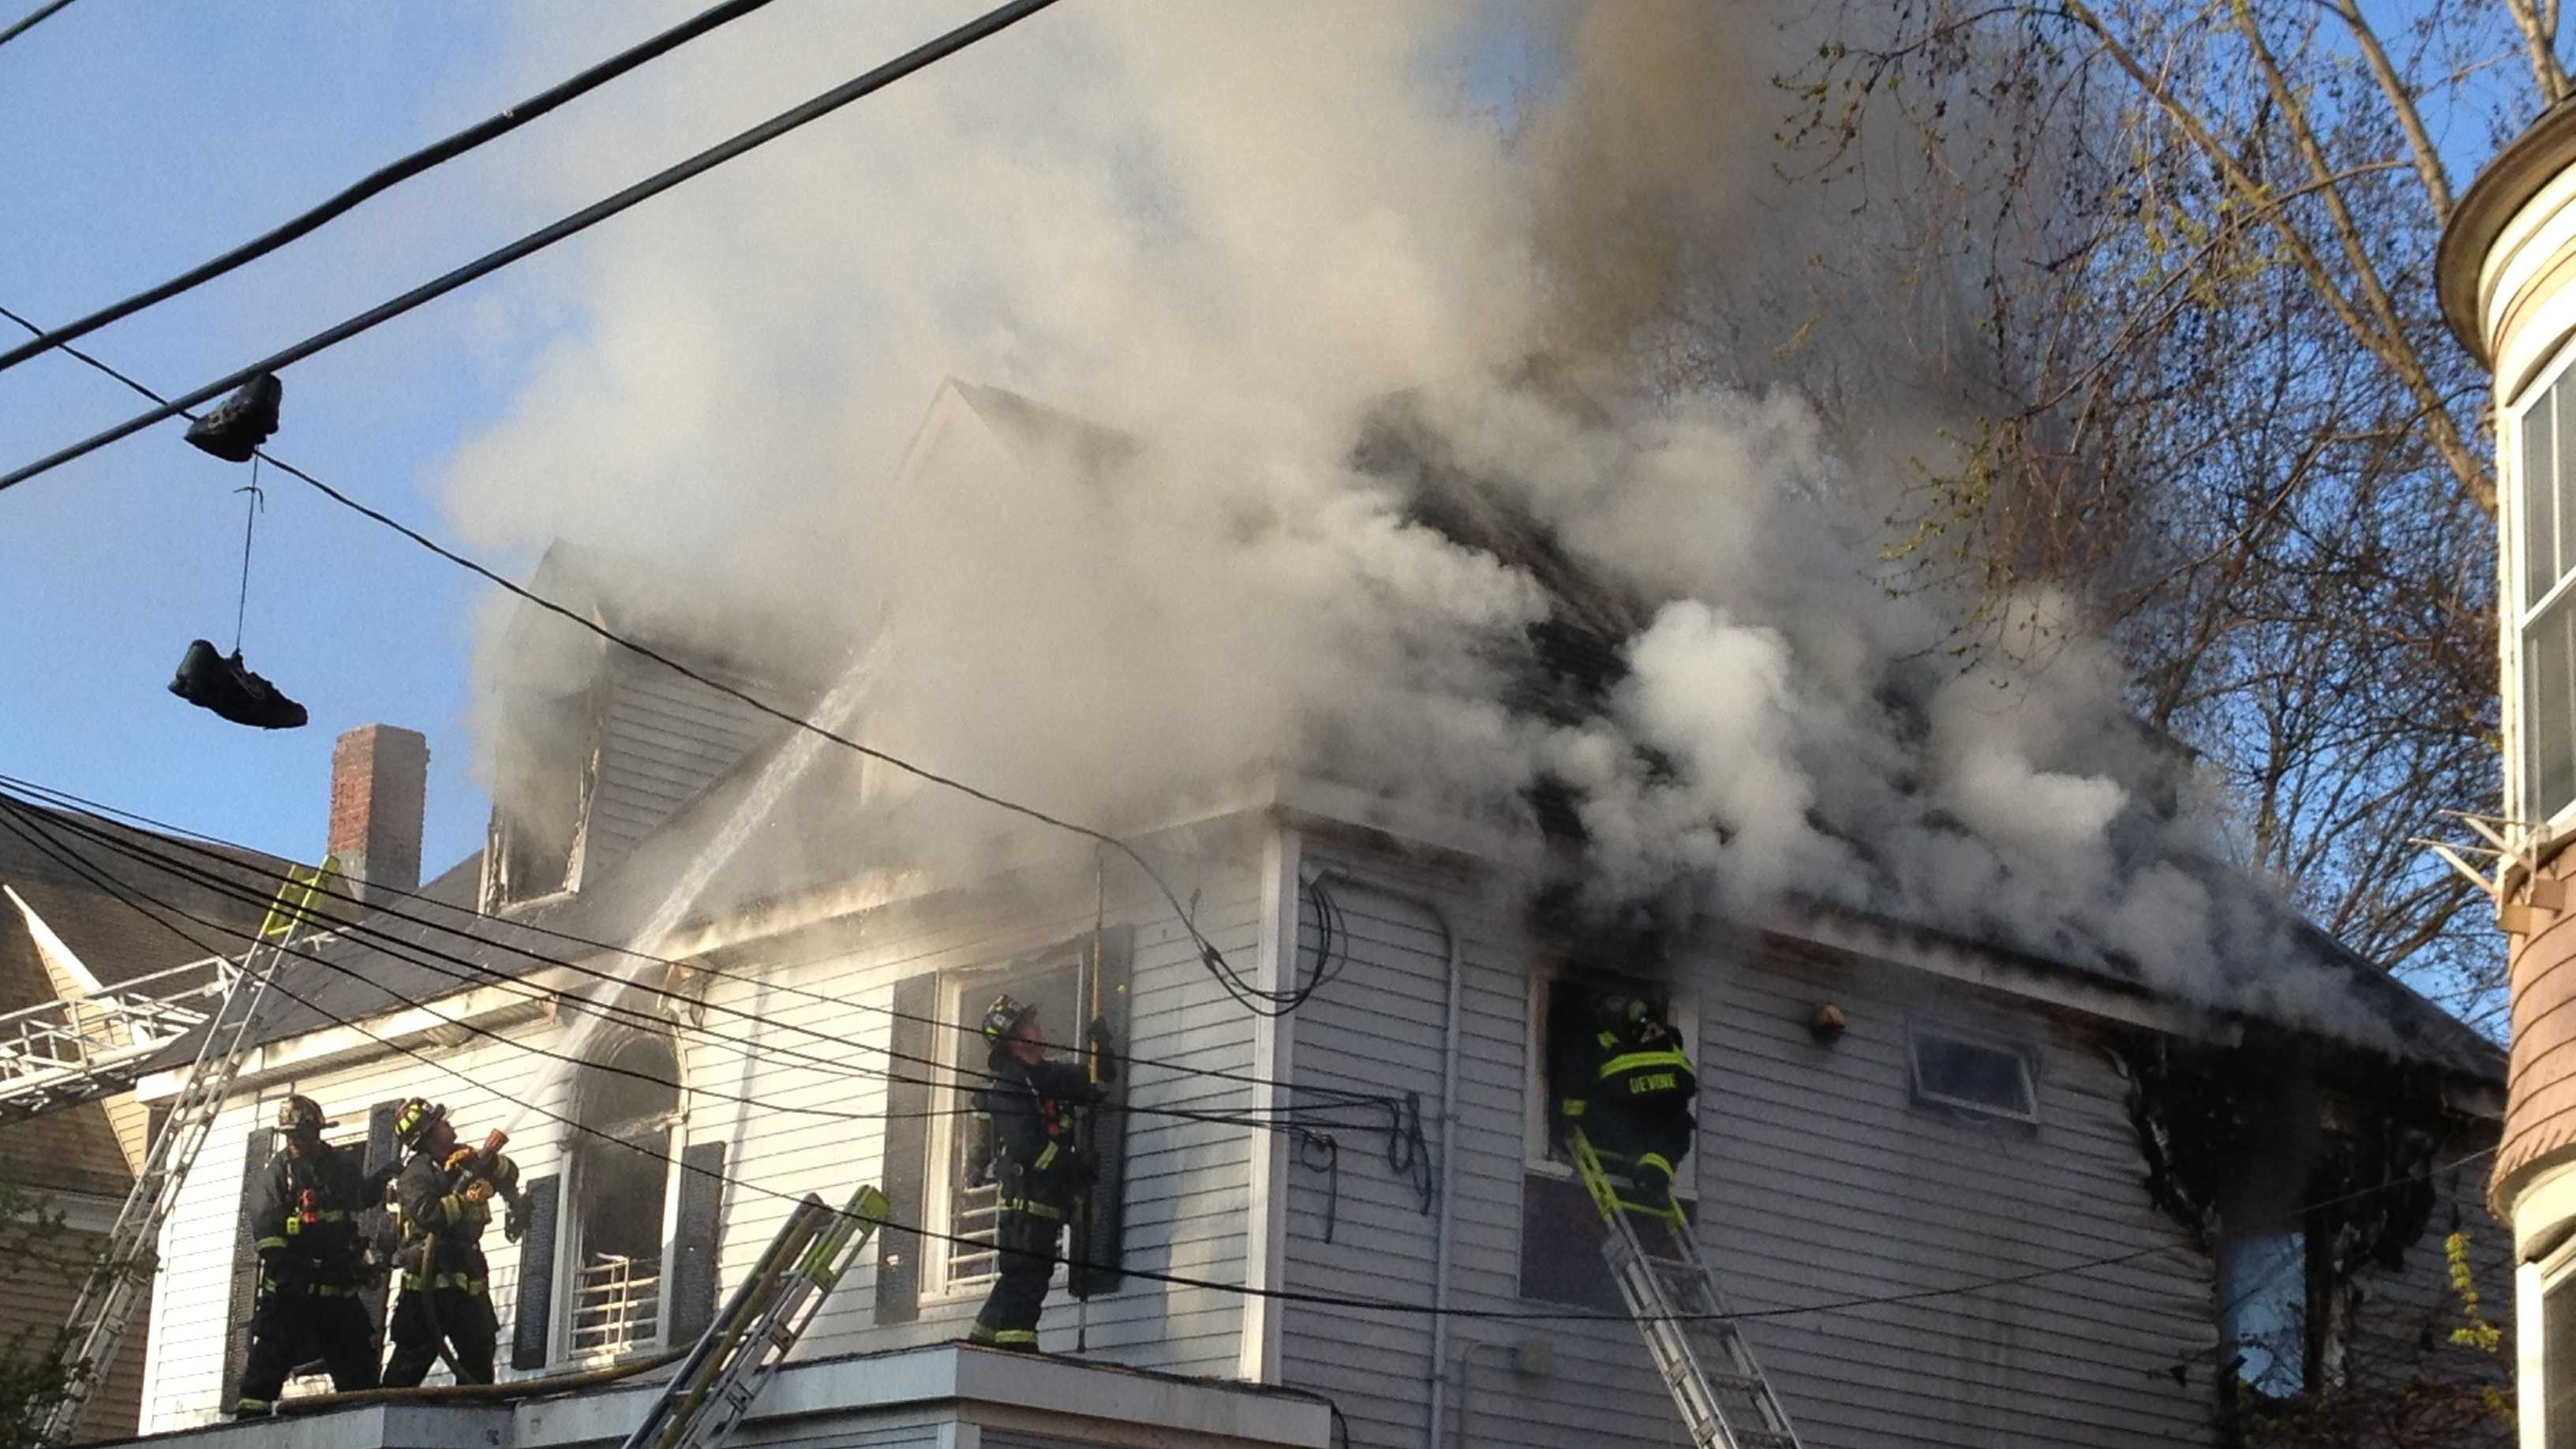 Fire officials said 18 people had been living in the house.